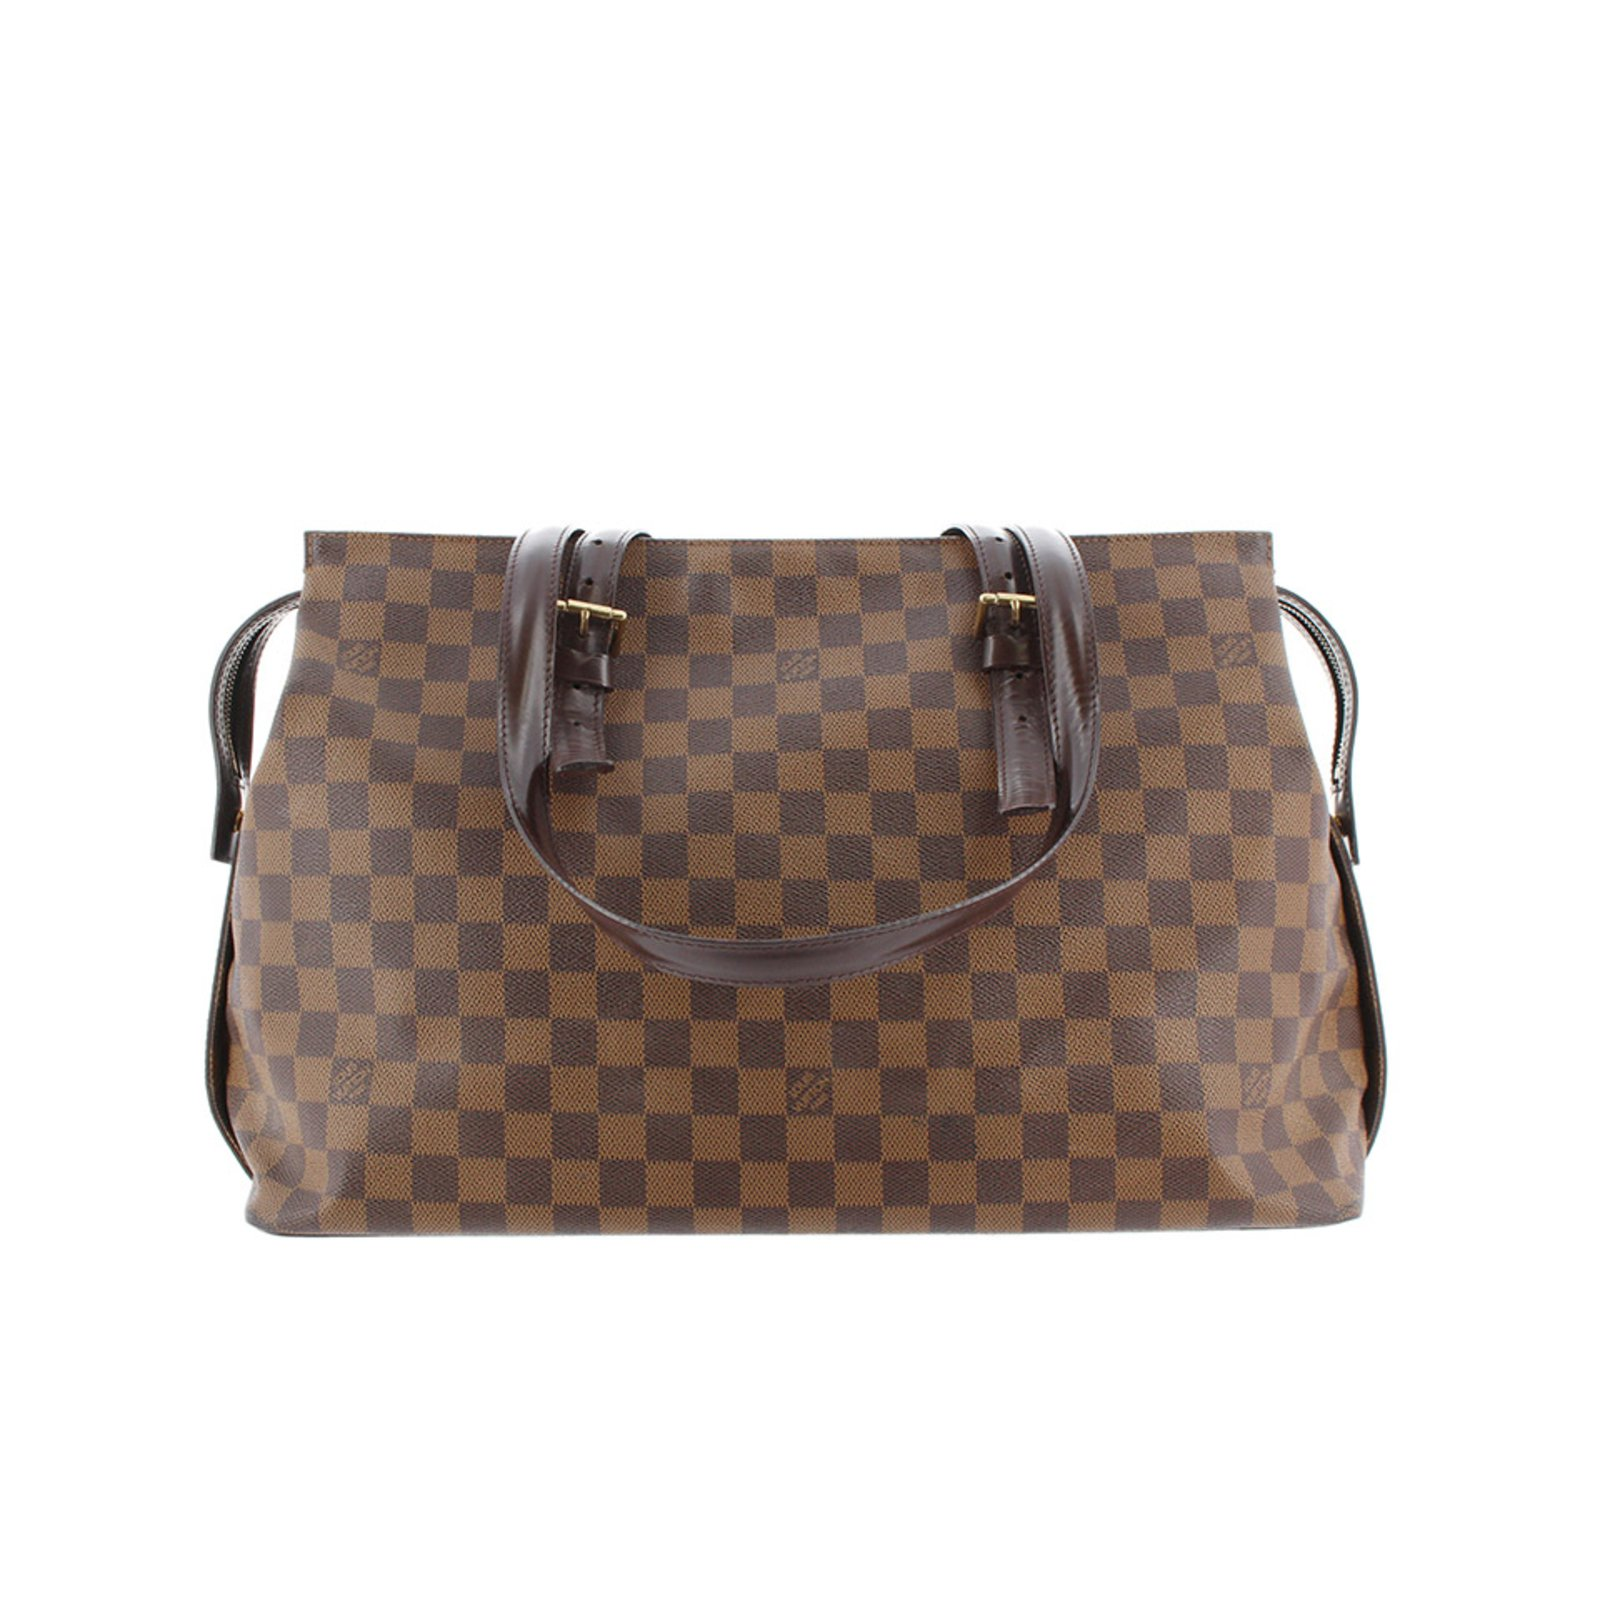 b30bbe475224 Louis Vuitton Damier Ebene Chelsea Totes Leather